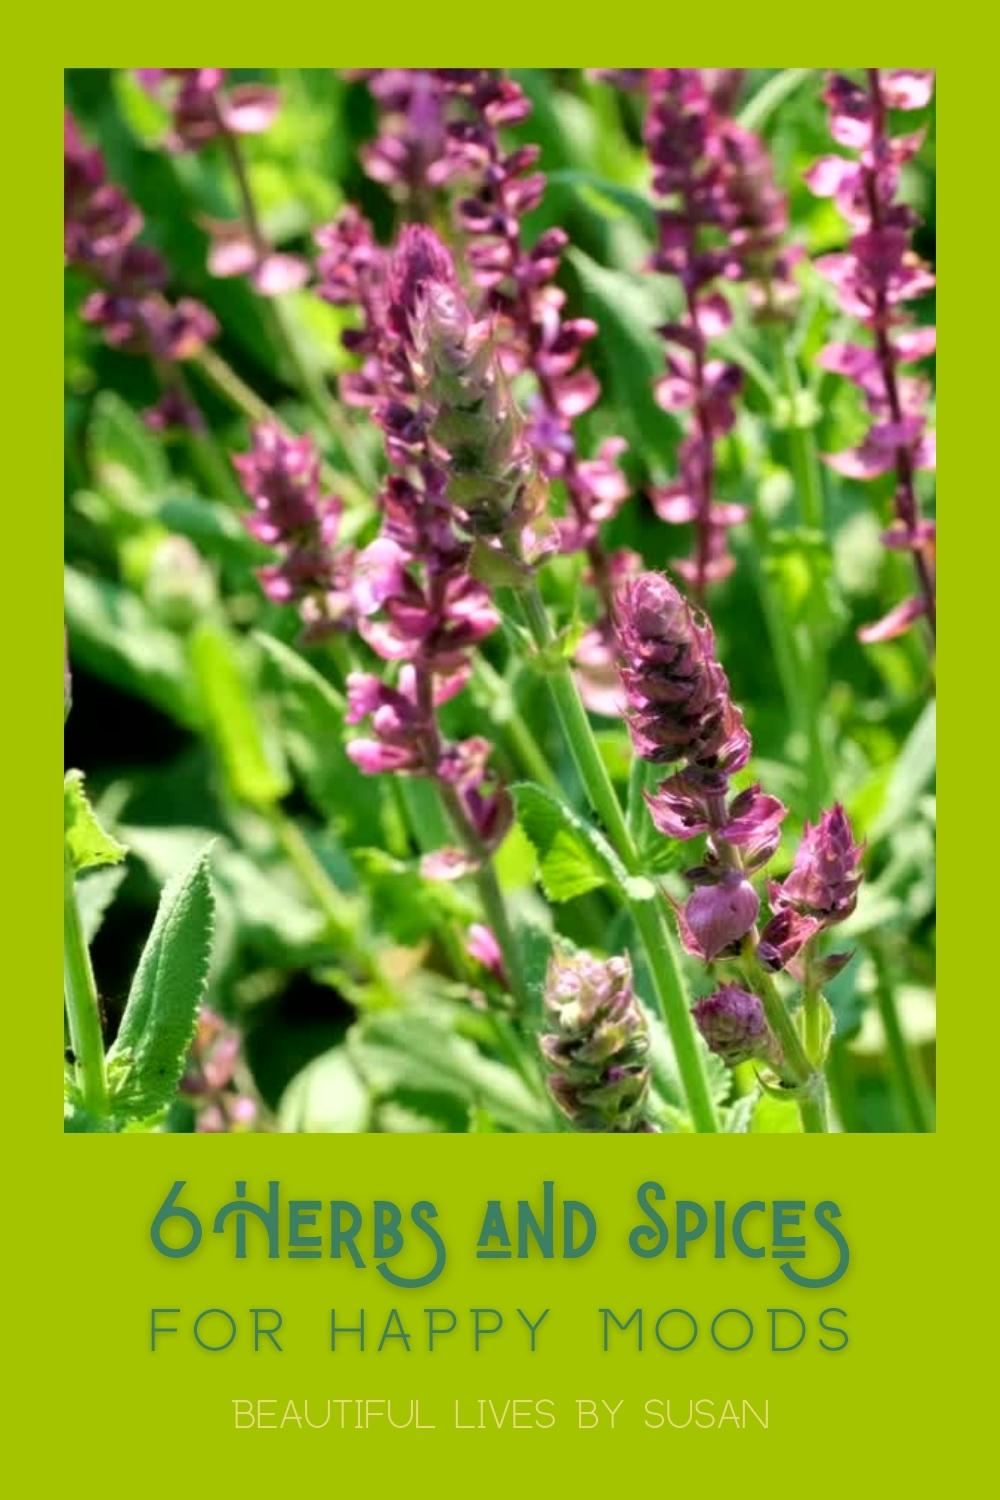 6 Herbs and Spices for Happy Moods